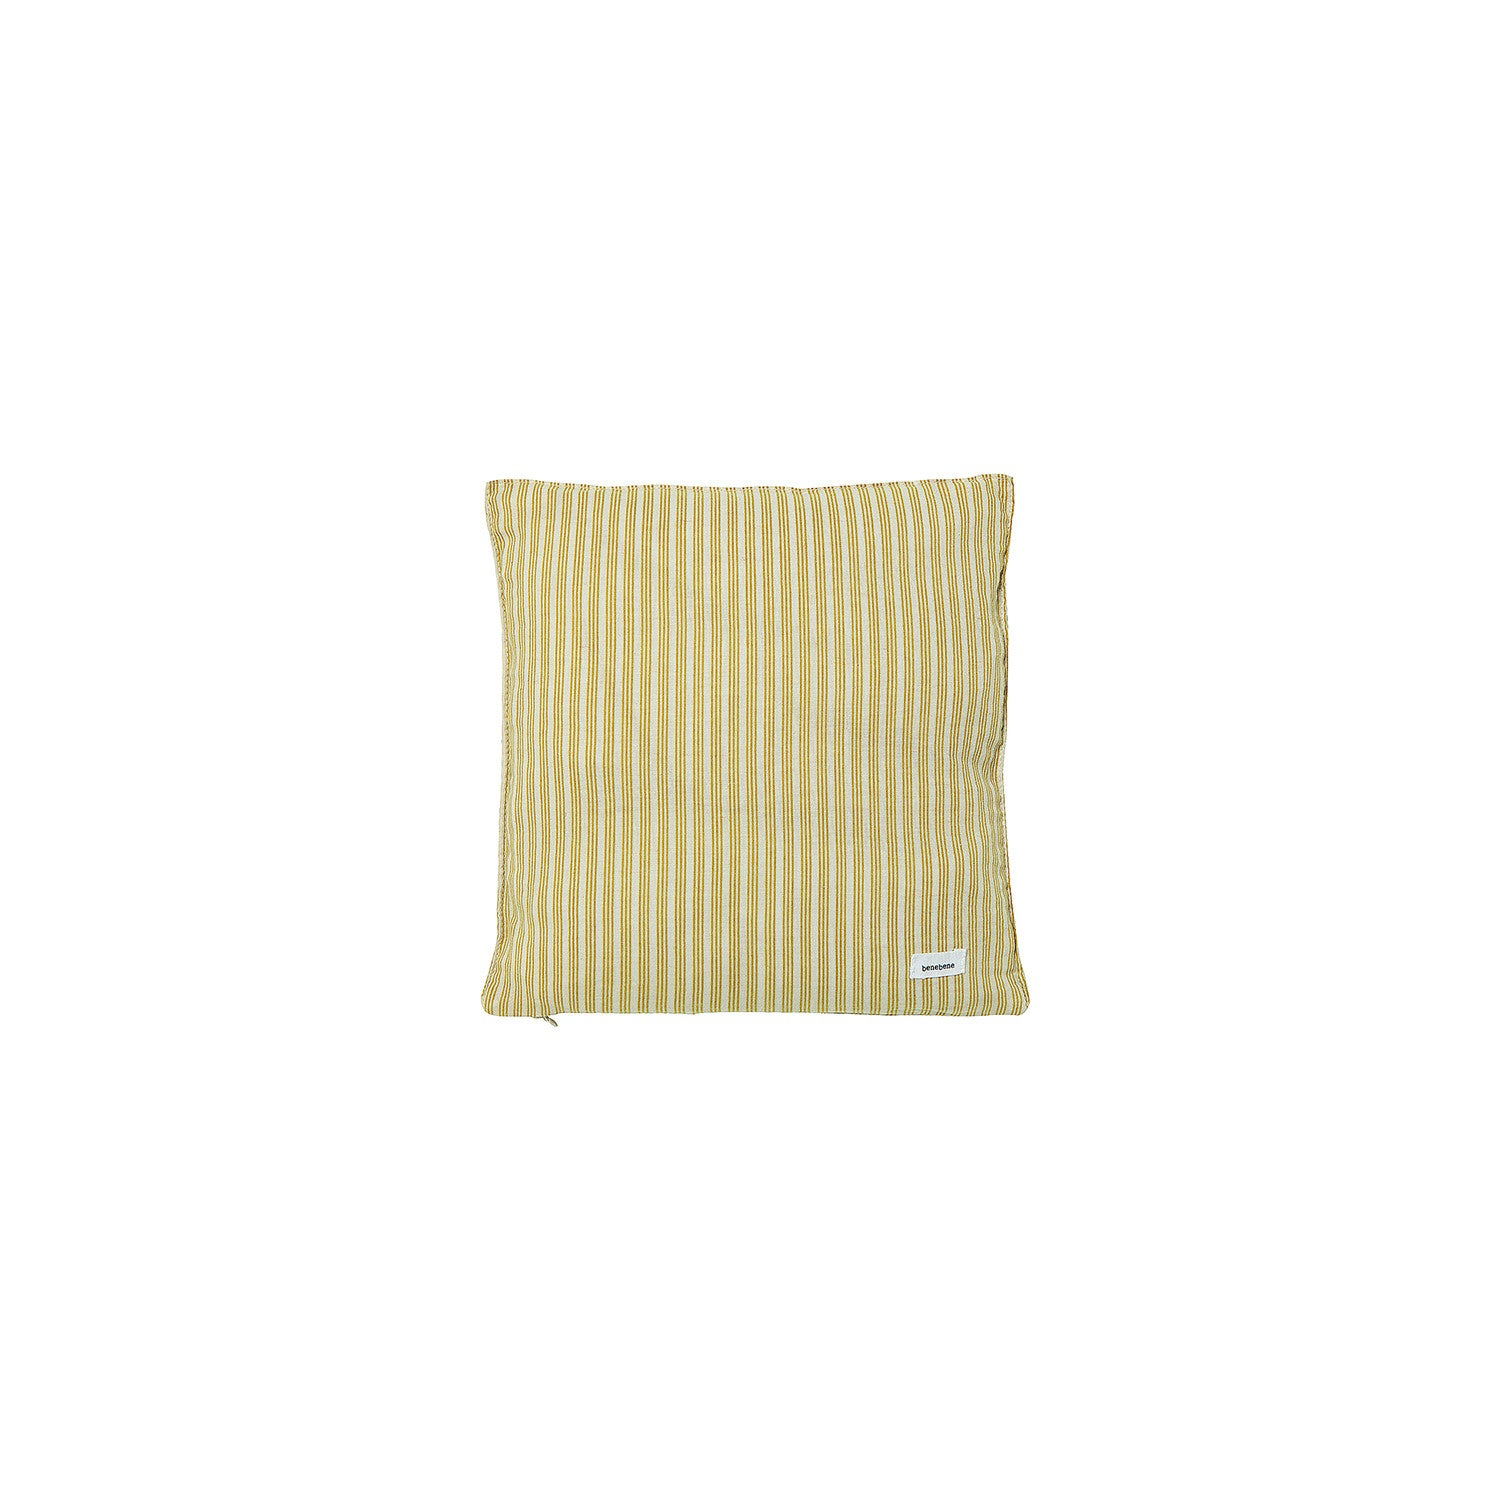 Bene Bene Mustard Mini Cushion - Ladida